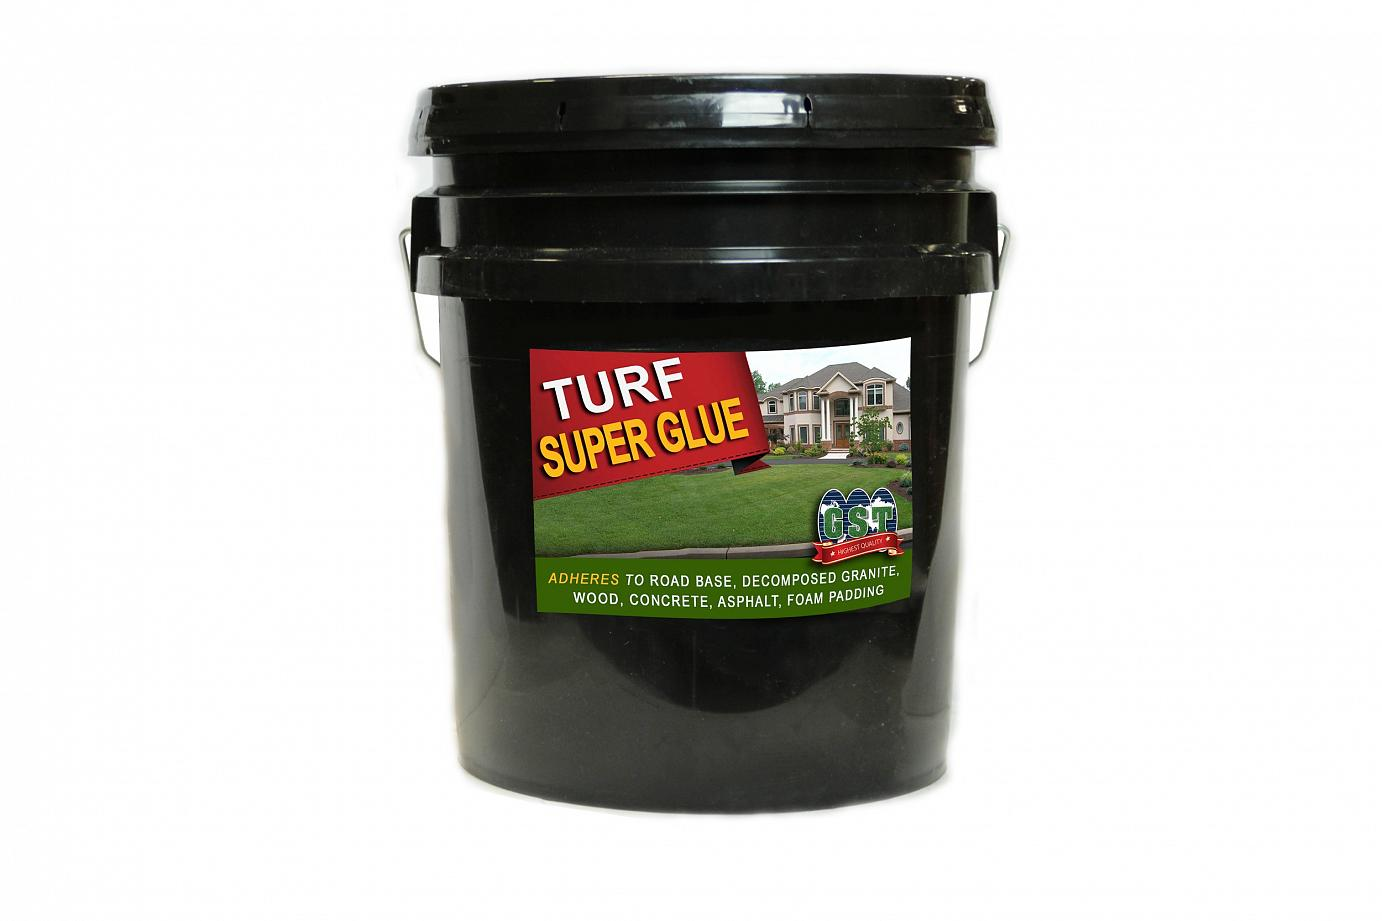 Turf Super Glue 5 Gallons Artificial Grass Chandler Arizona Artificial Grass Tools Installation